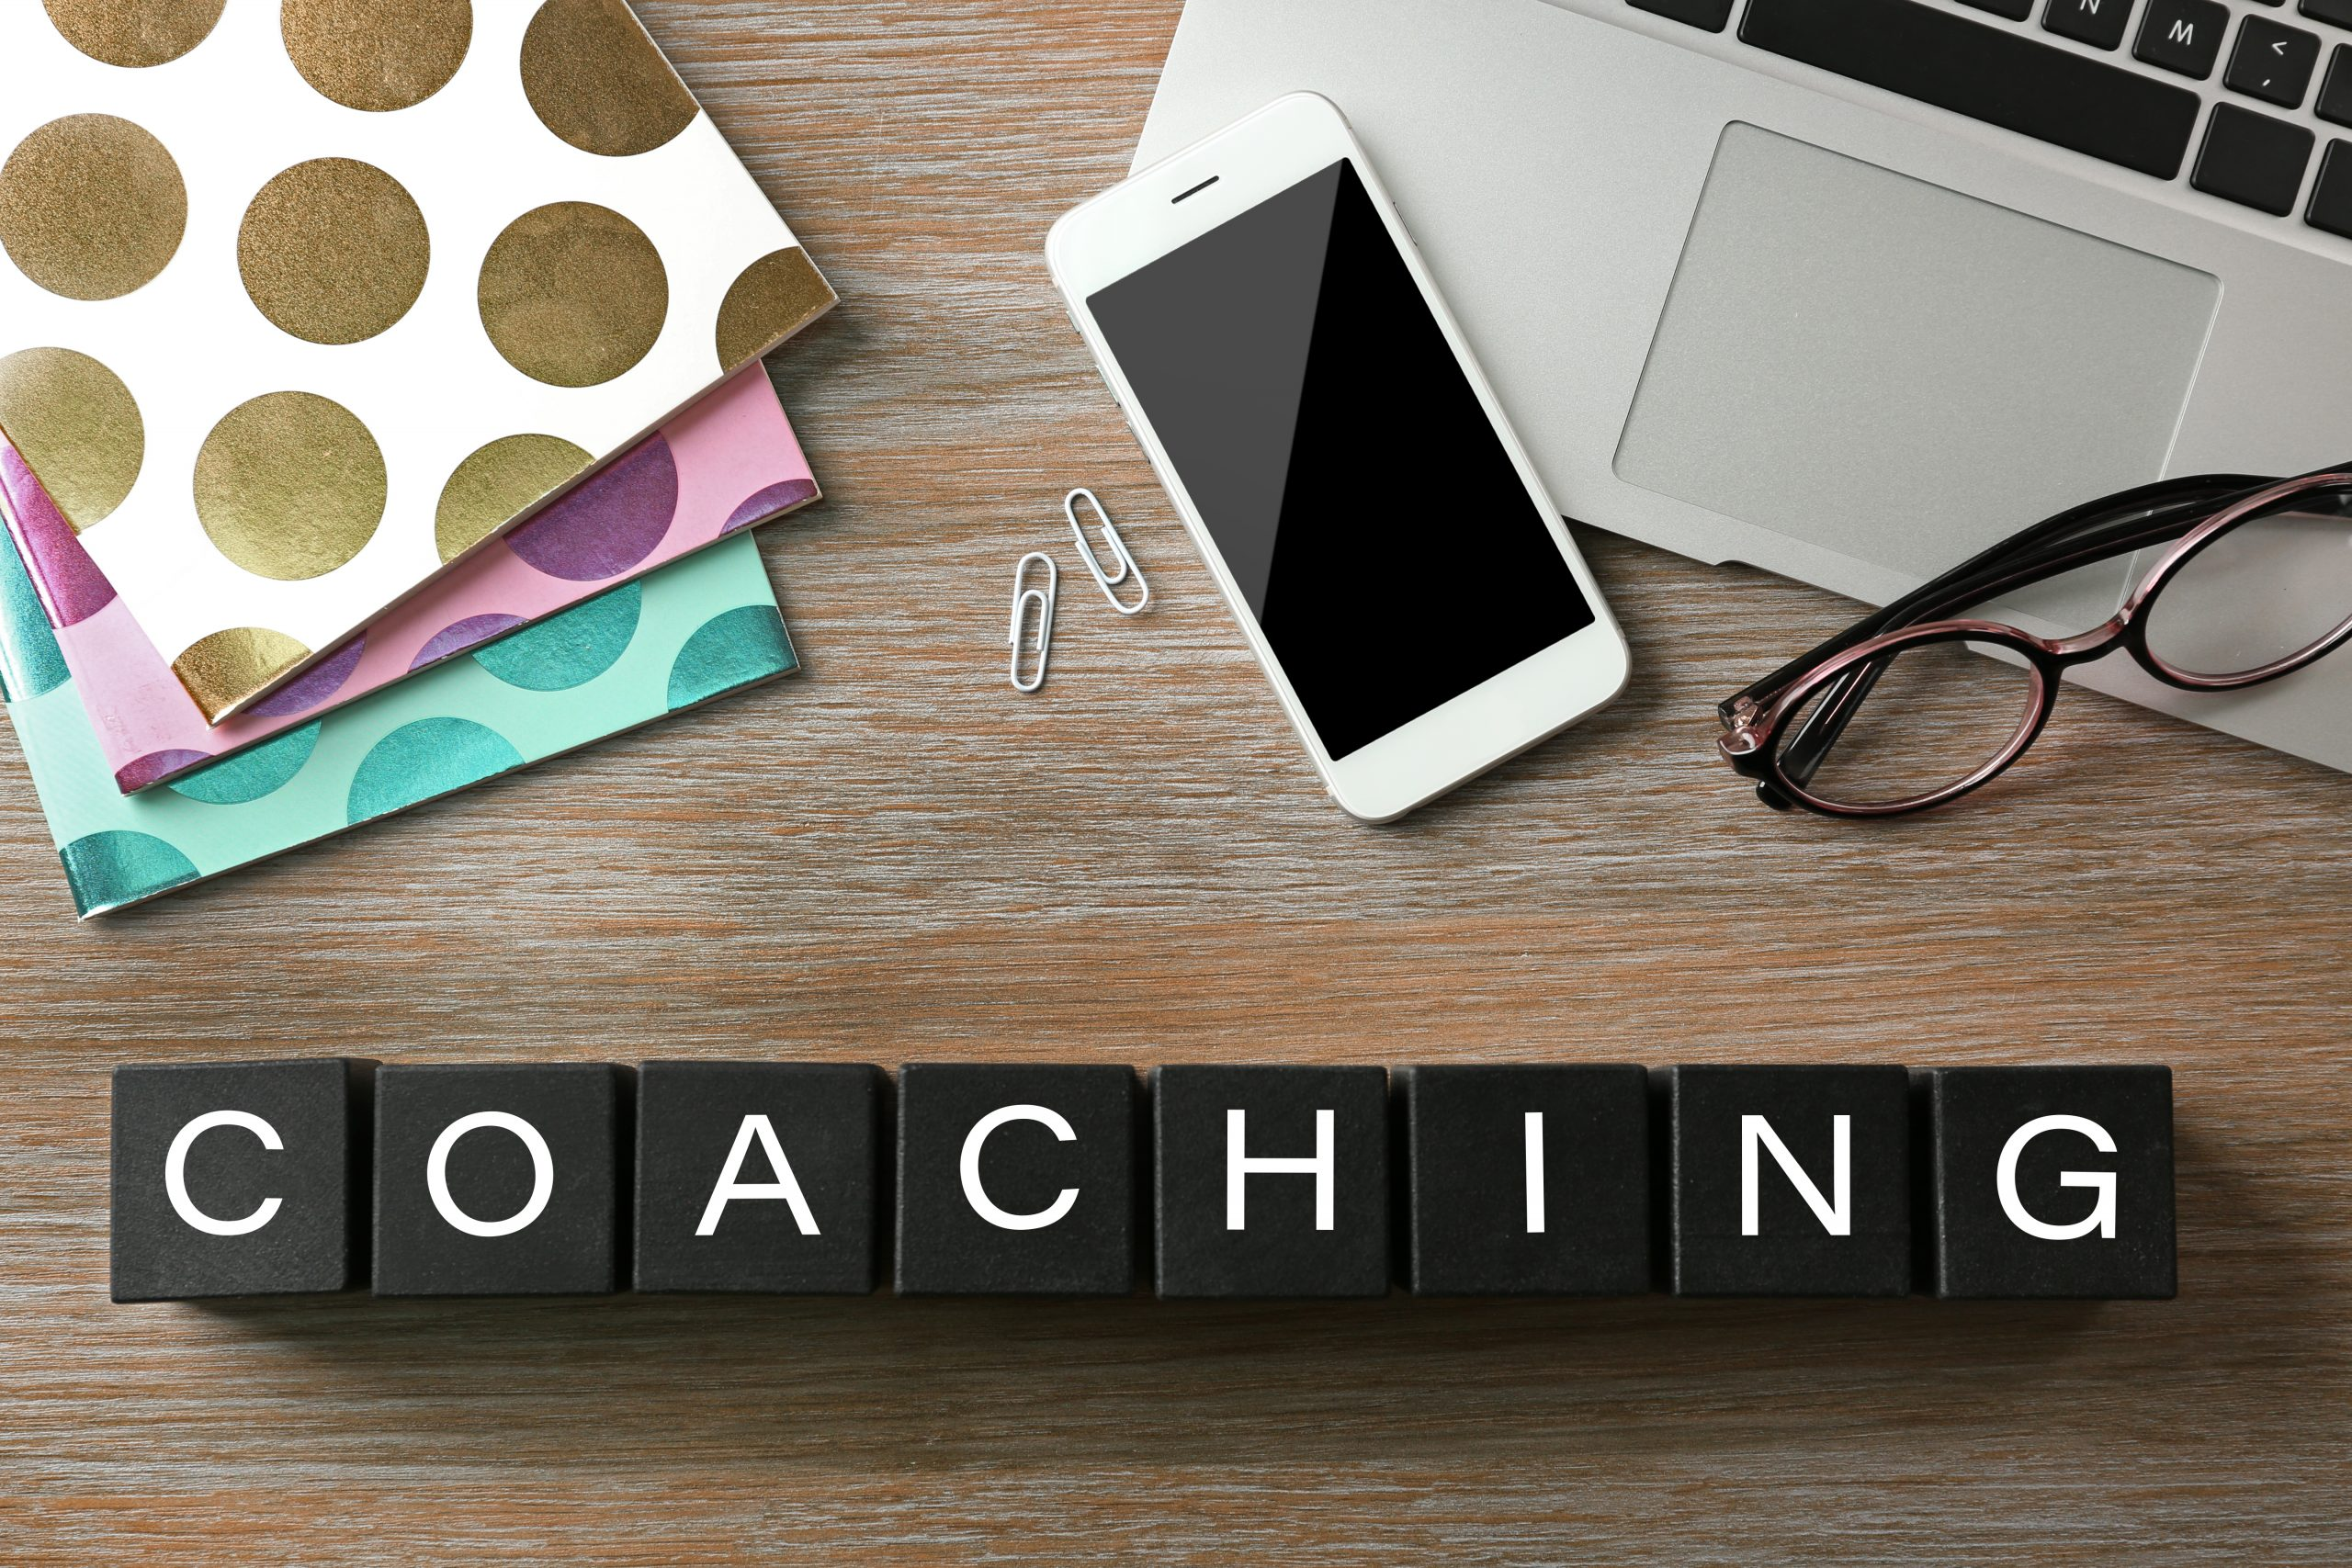 start a coaching practice to make money online. Check it out at jenbaucom.com